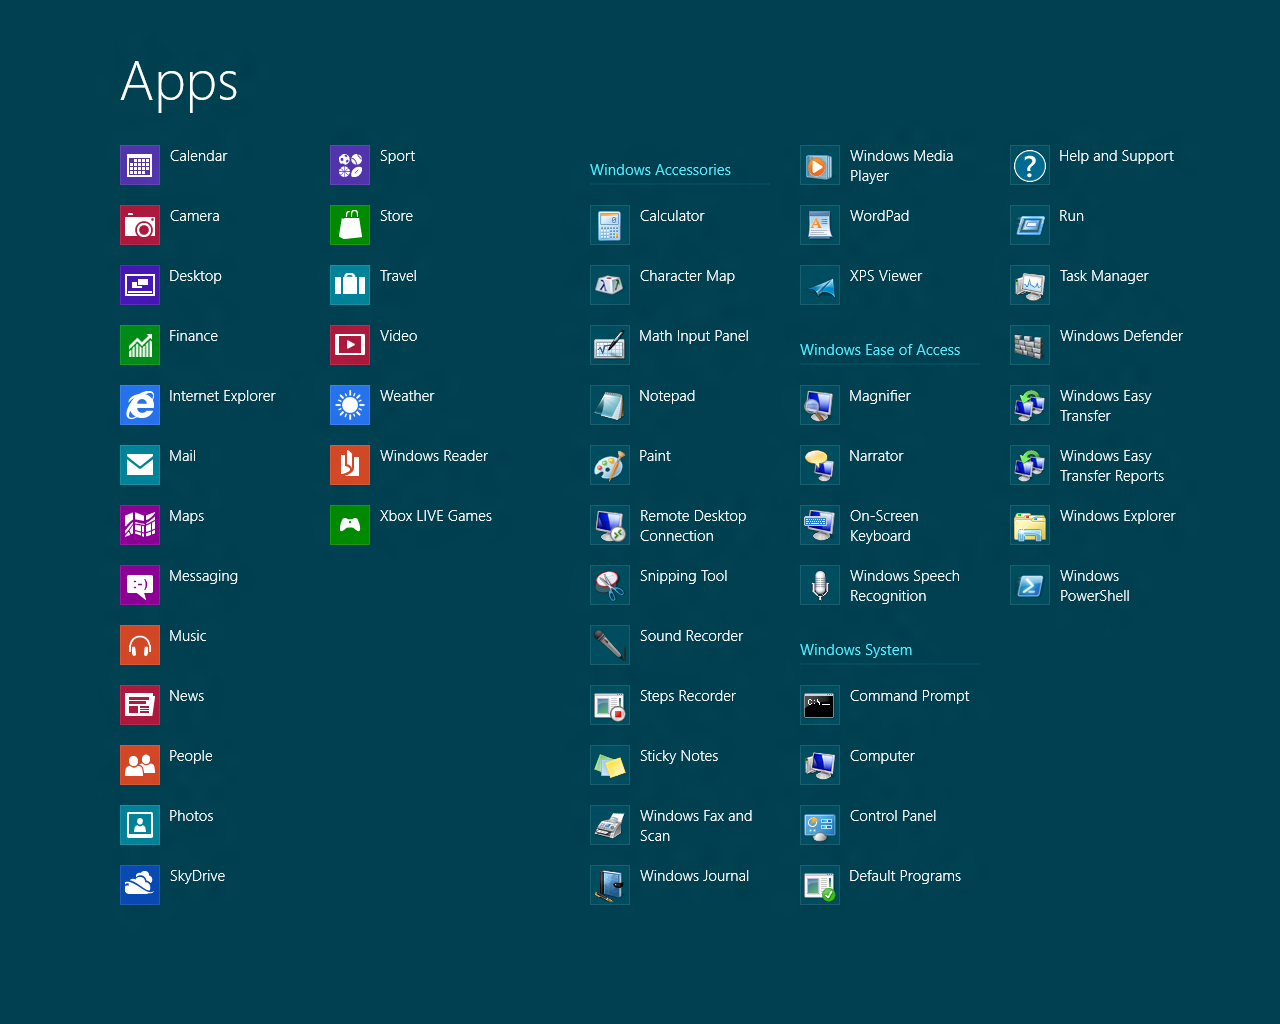 Windows 8 also includes an 'App' section of the Metro screen that has echoes of the old Start Menu